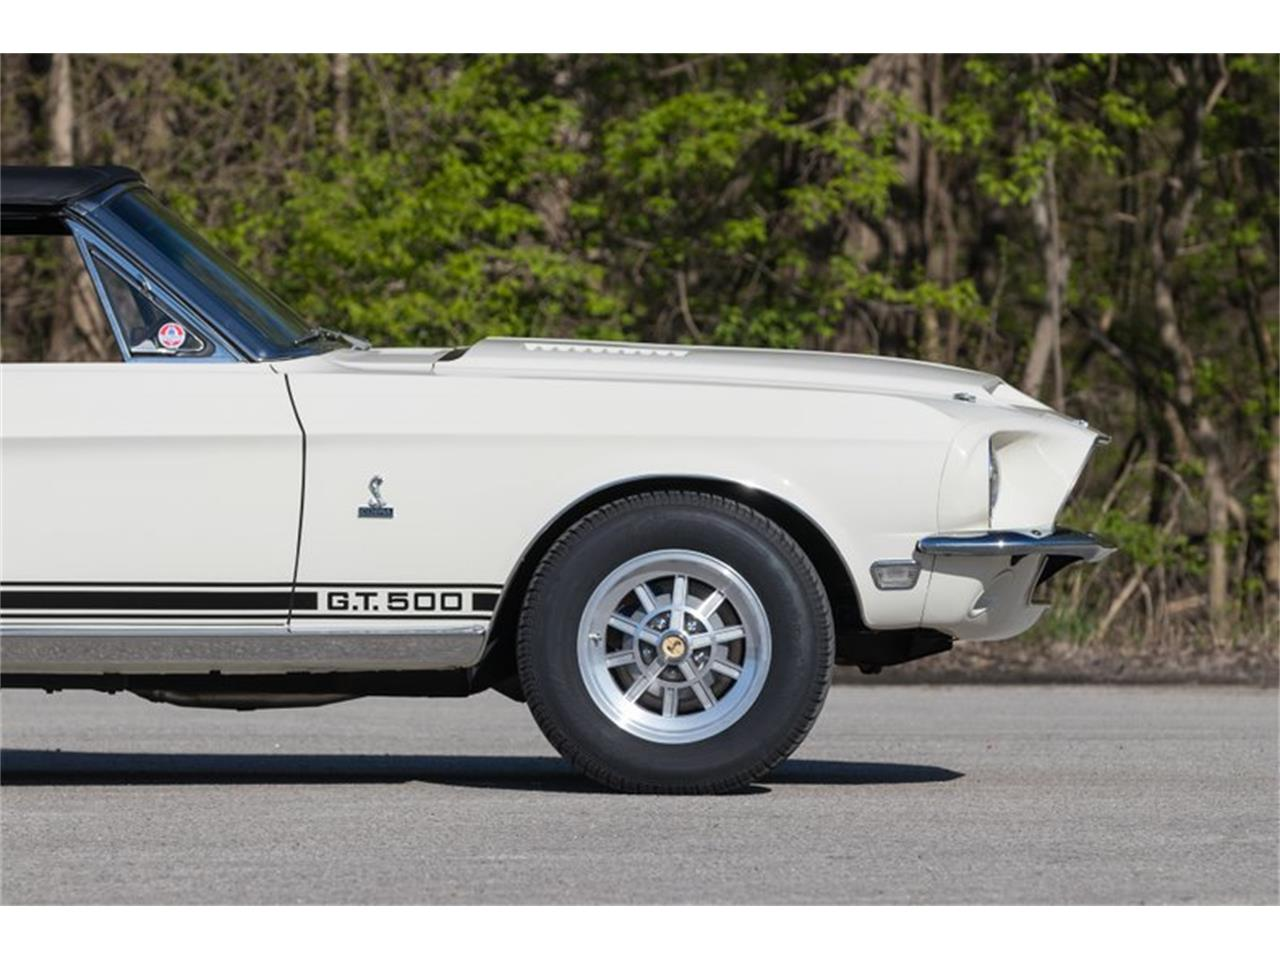 Large Picture of 1968 GT500 located in Missouri - $157,500.00 - PWHW